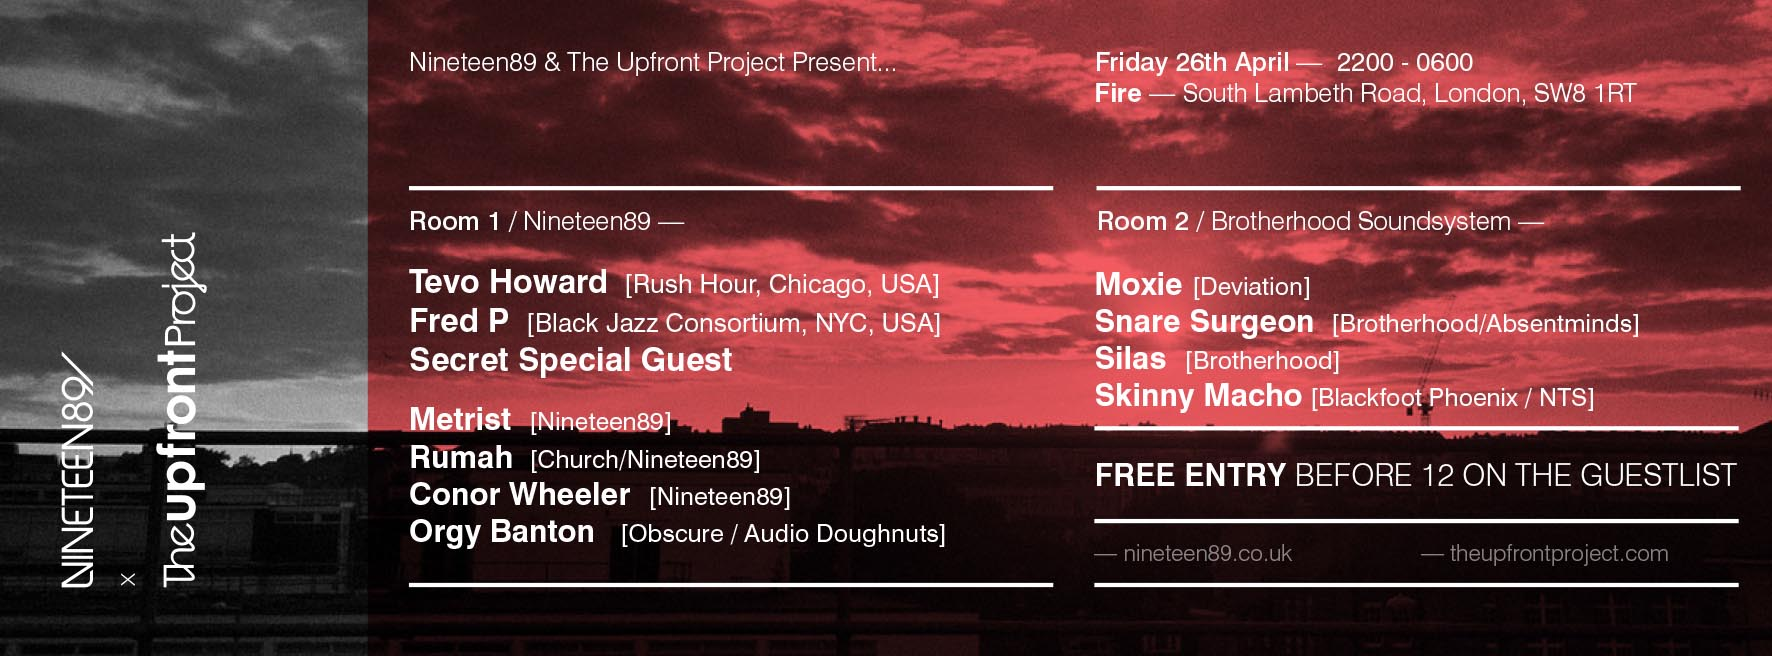 The Upfront Project and Nineteen89 Free Party